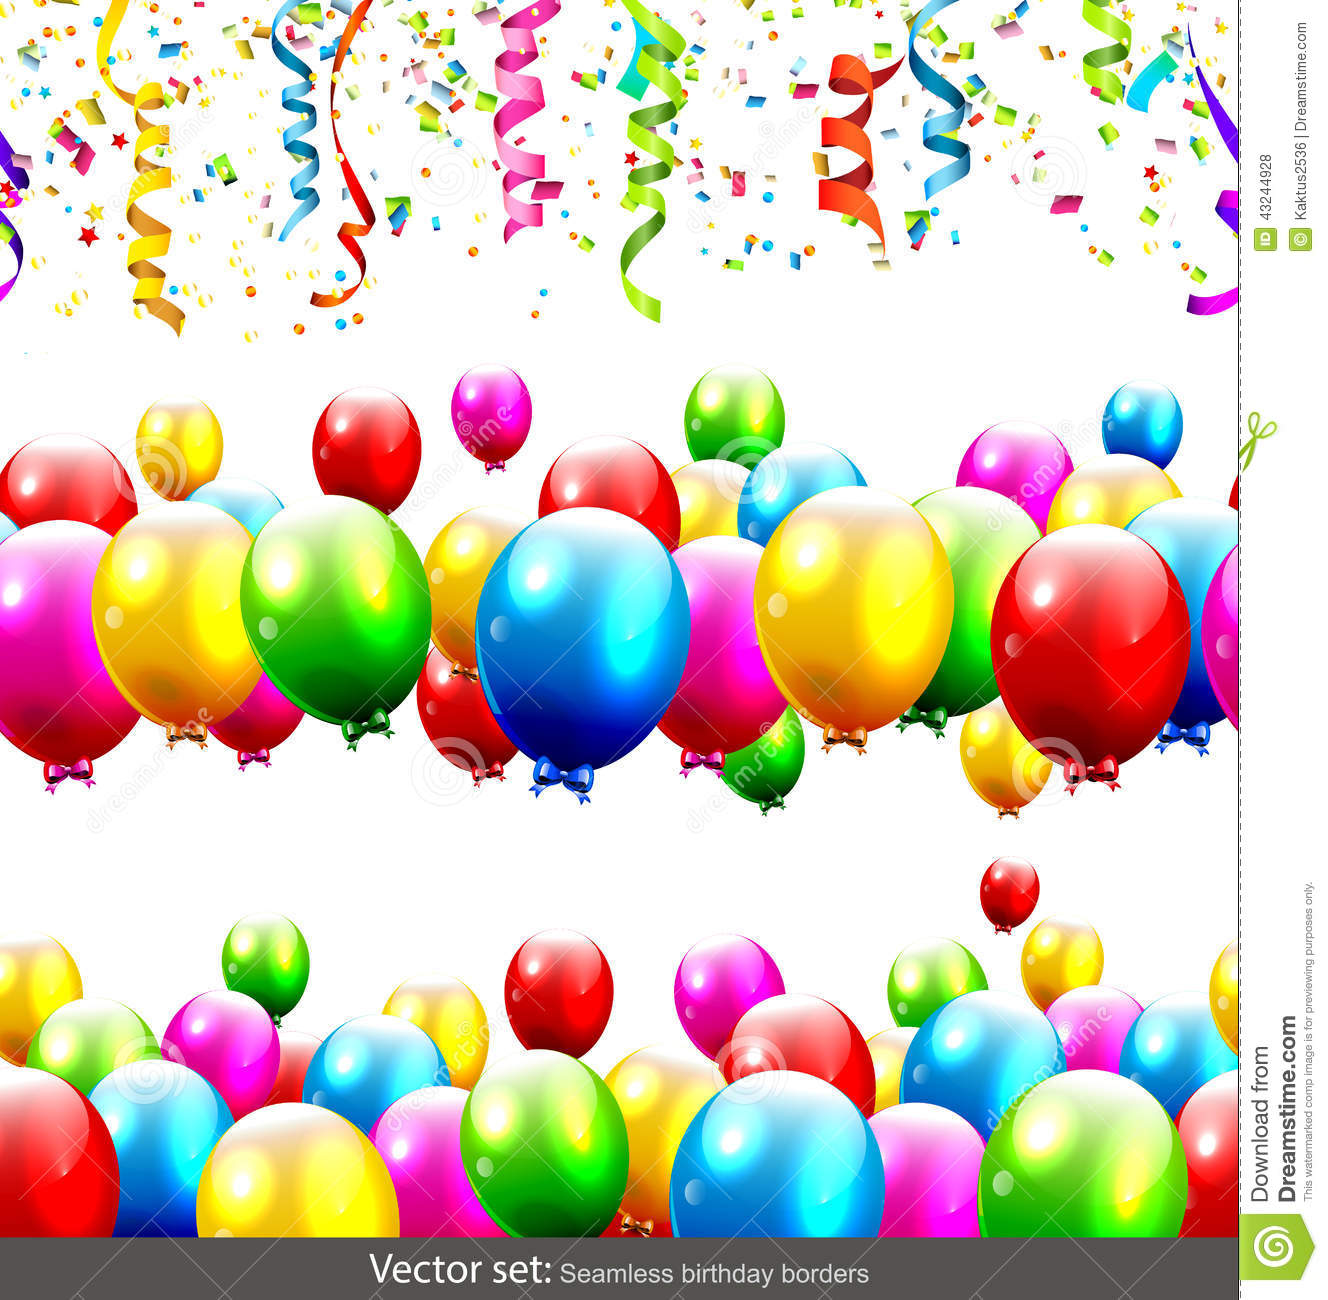 Vector Birthday Border